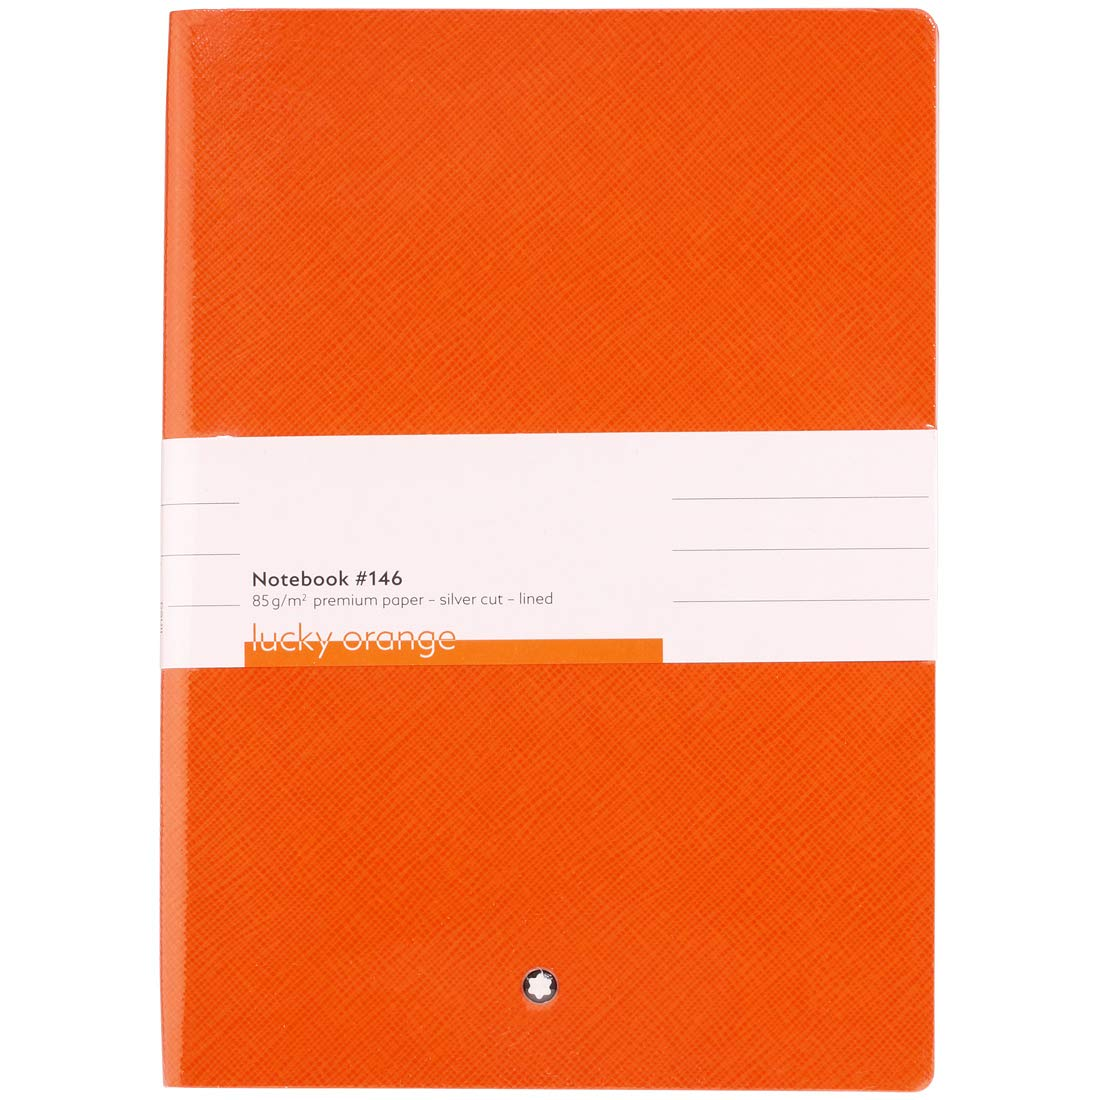 Mont Blanc Notebook 116225Fine Stationery # 146/Leather Lined A5Notebook with Soft Cover. Colour: Lucky Orange/192Pages by MONTBLANC